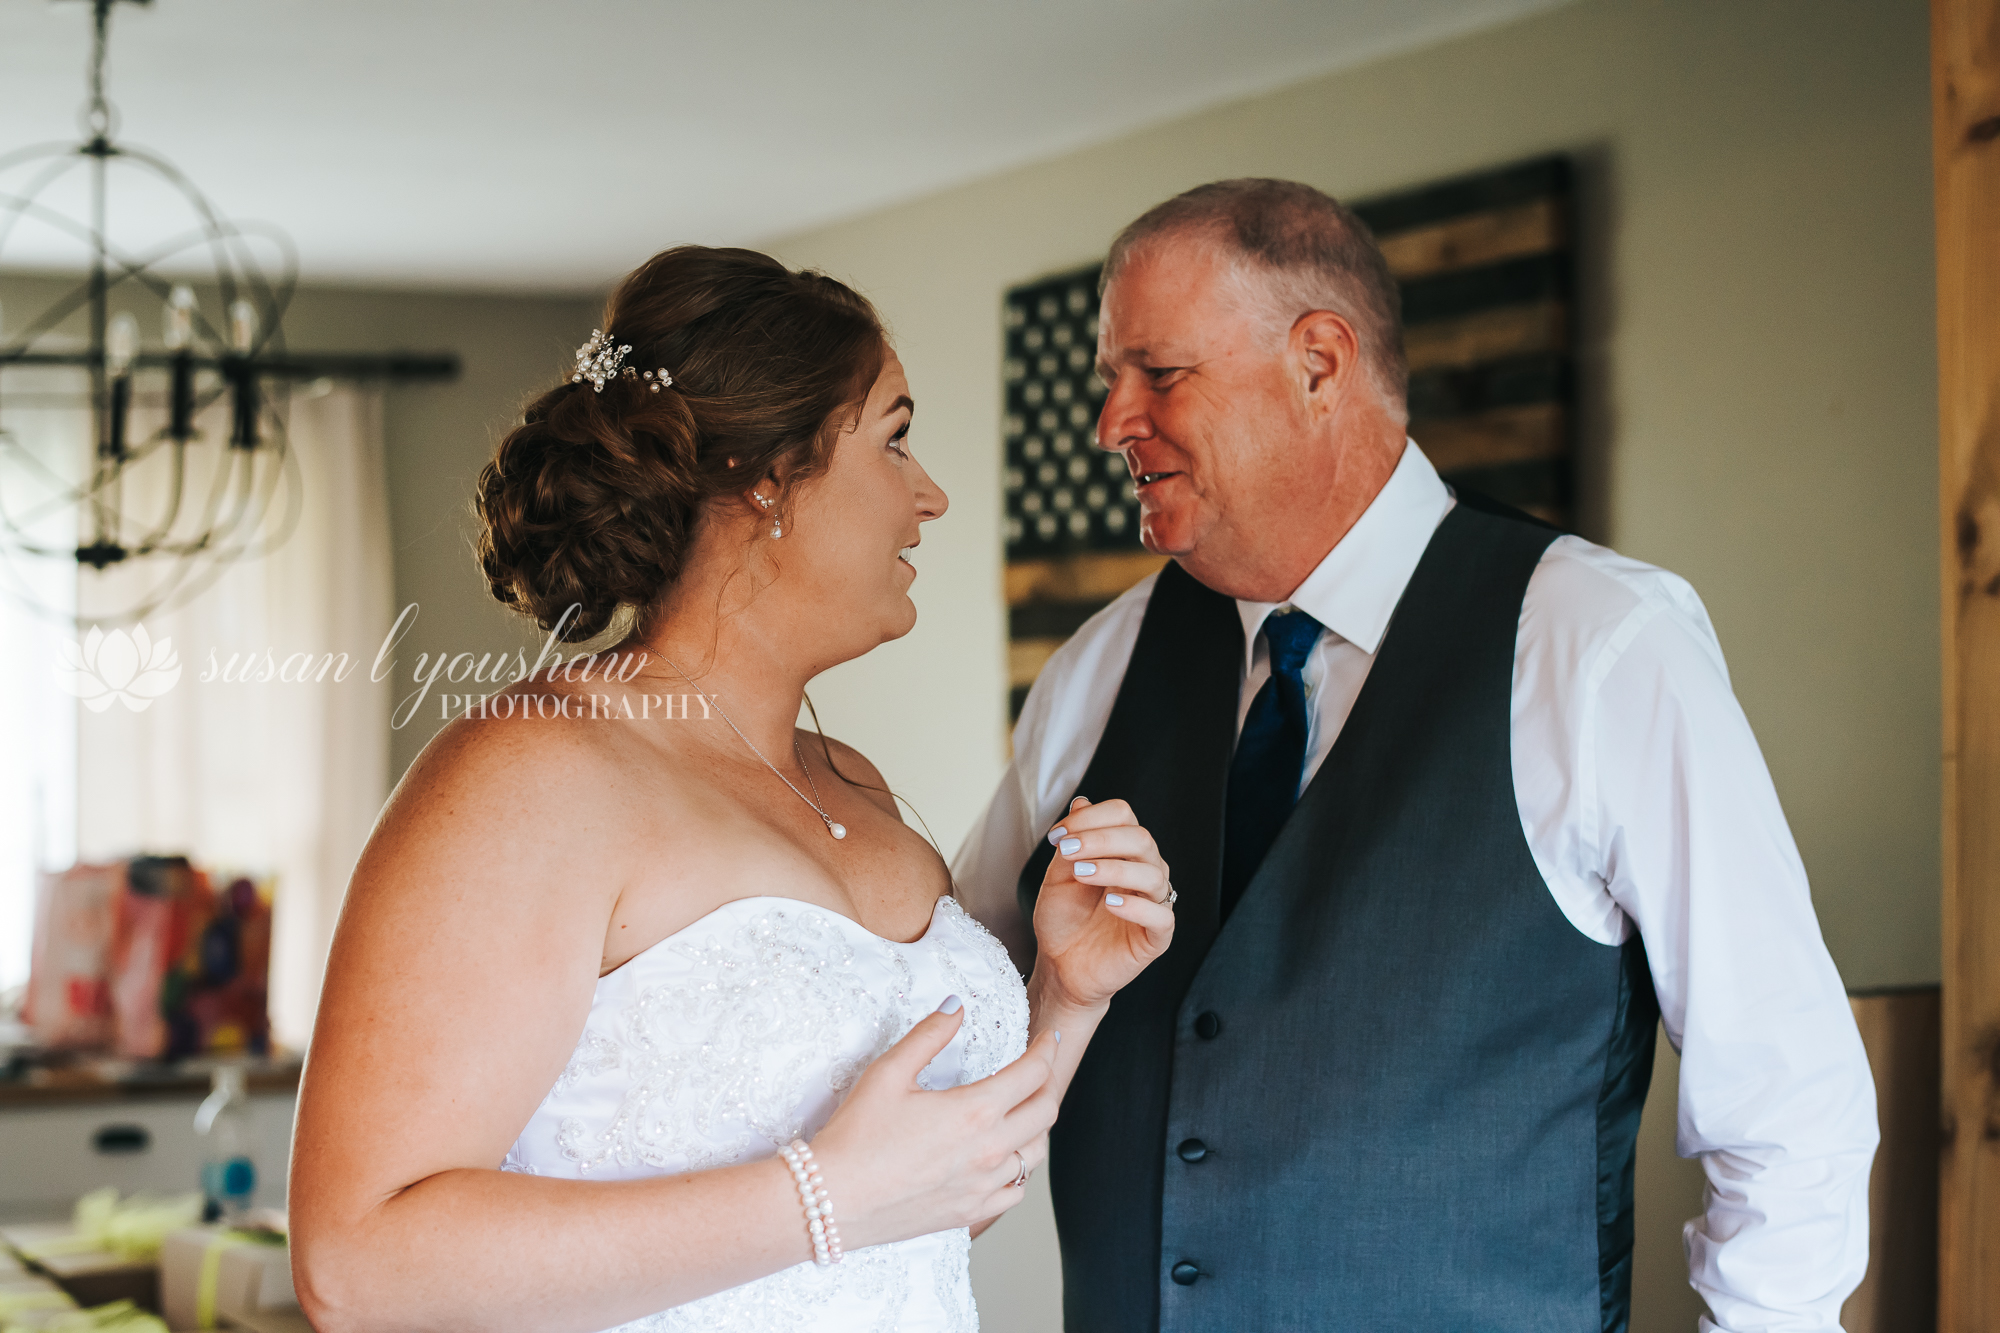 Erin and Jason Wedding Photos 07-06-2019 SLY Photography-37.jpg